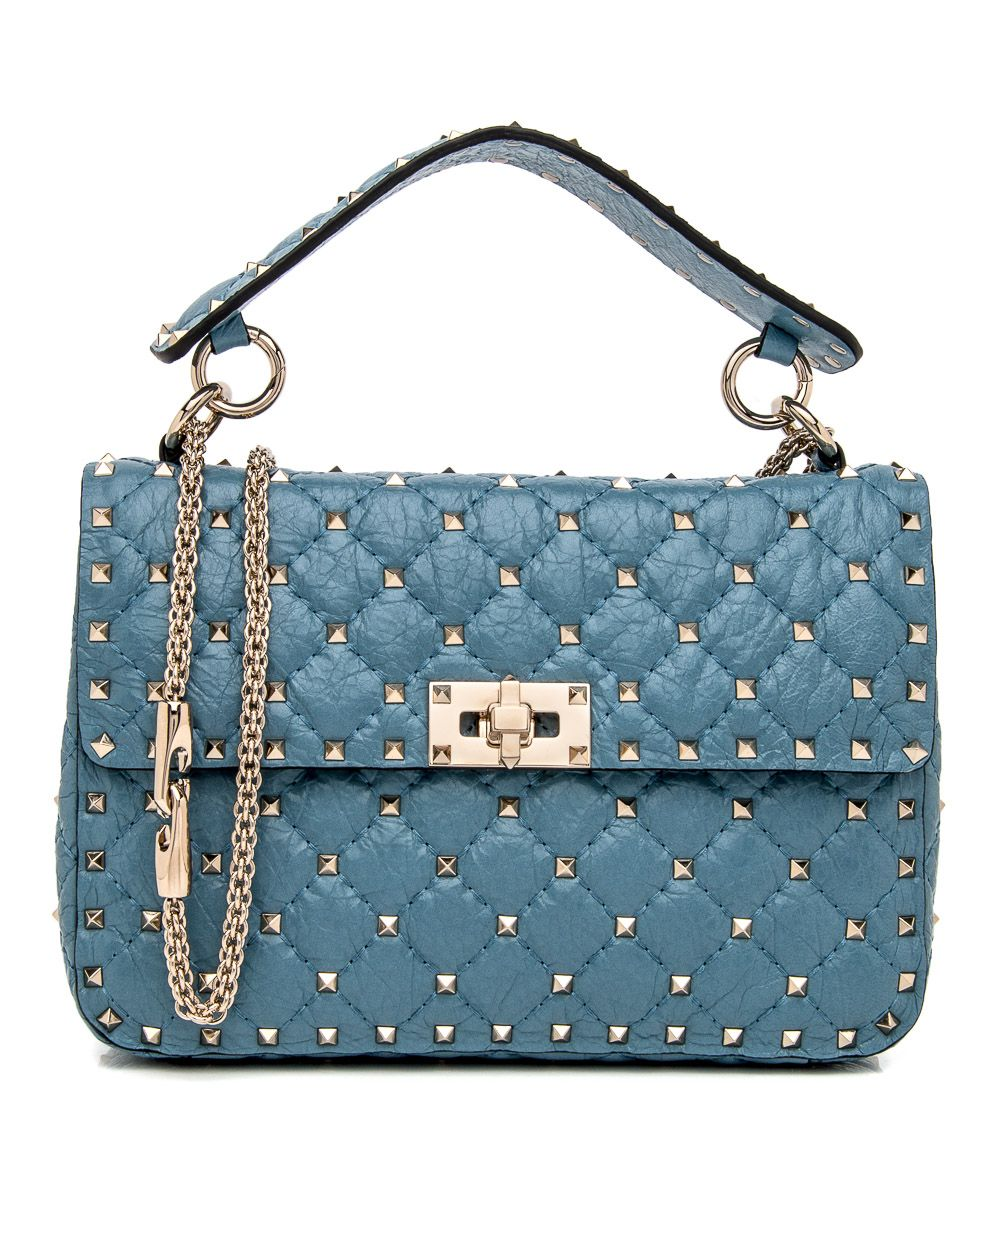 ea99bcb892e07f Valentino Garavani Blue Rockstud Spike Chain Bag Flap front with turn lock  closure Soft lambskin leather